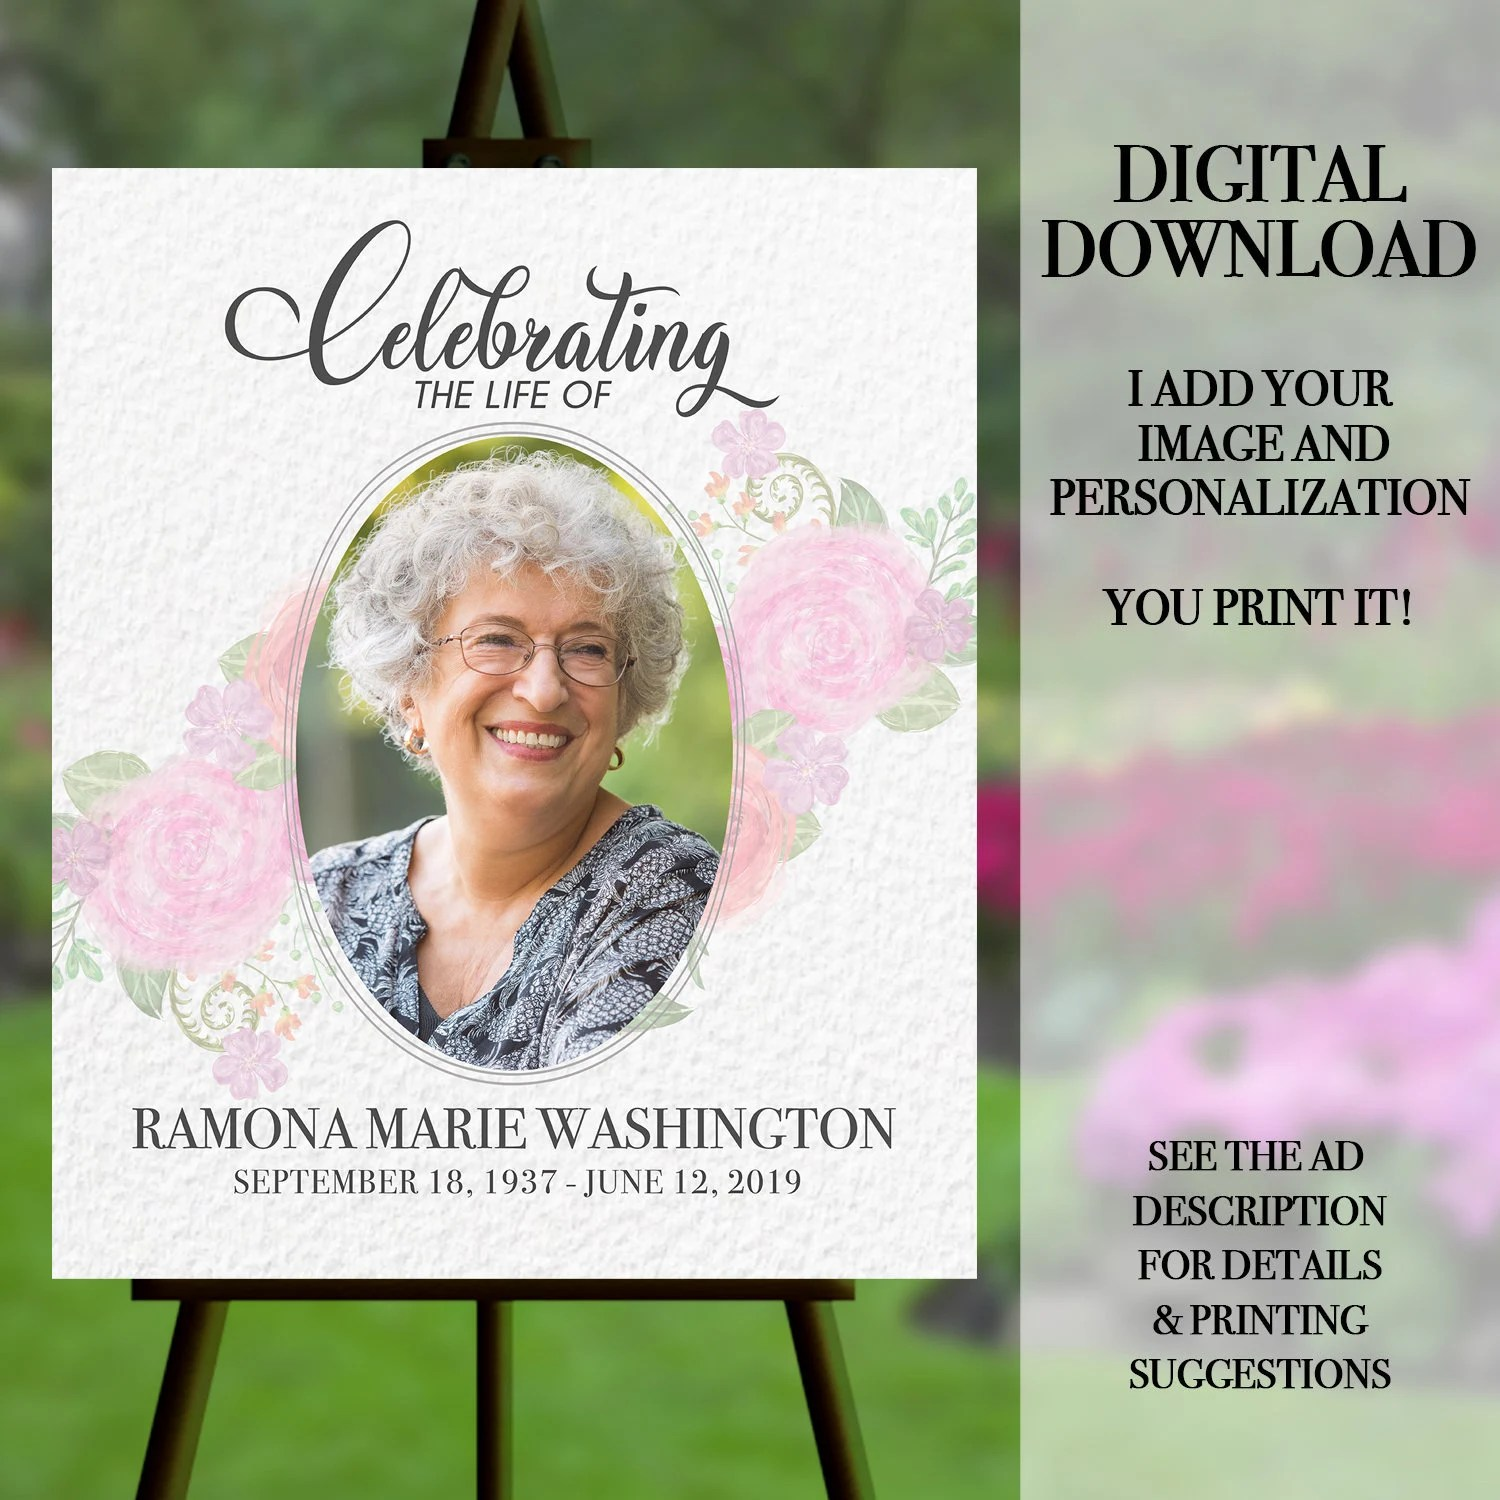 funeral welcome sign celebration of life poster funeral memorial memorial service funeral poster funeral portrait memorial flowers